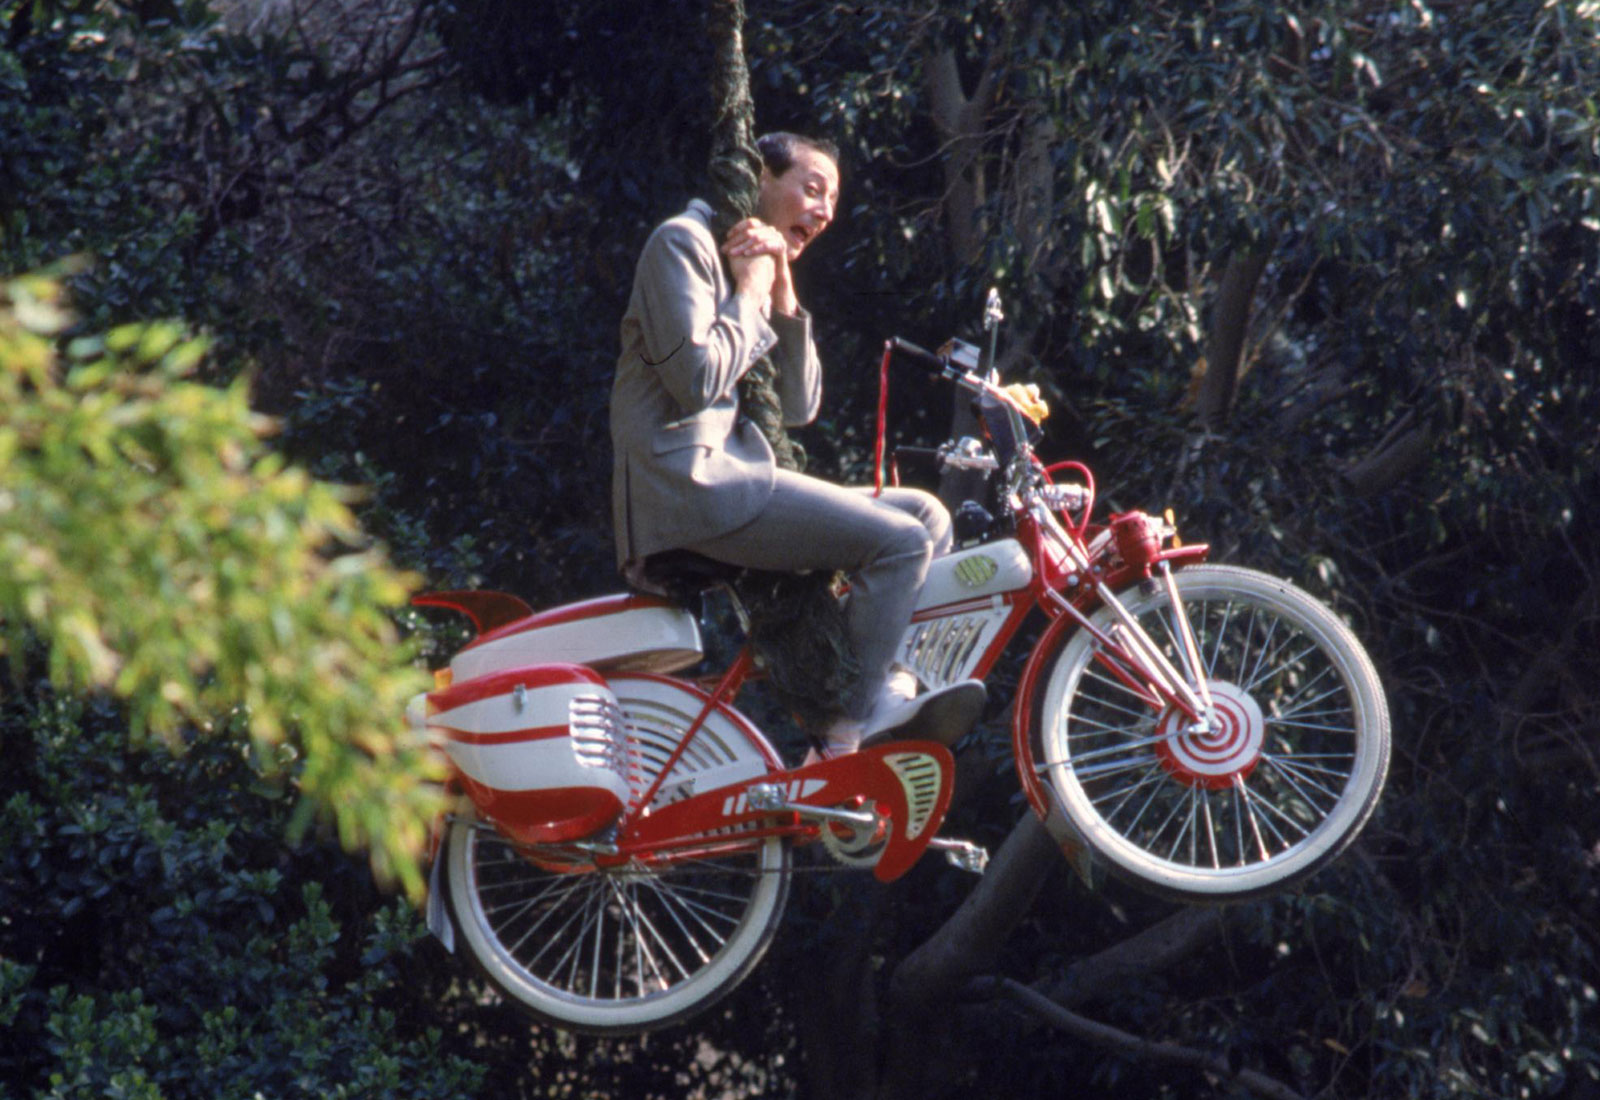 Pee-Wee Herman (Paul Reubens) swings into action on his beloved bicycle in Pee-Wee's Big Adventure (1985)